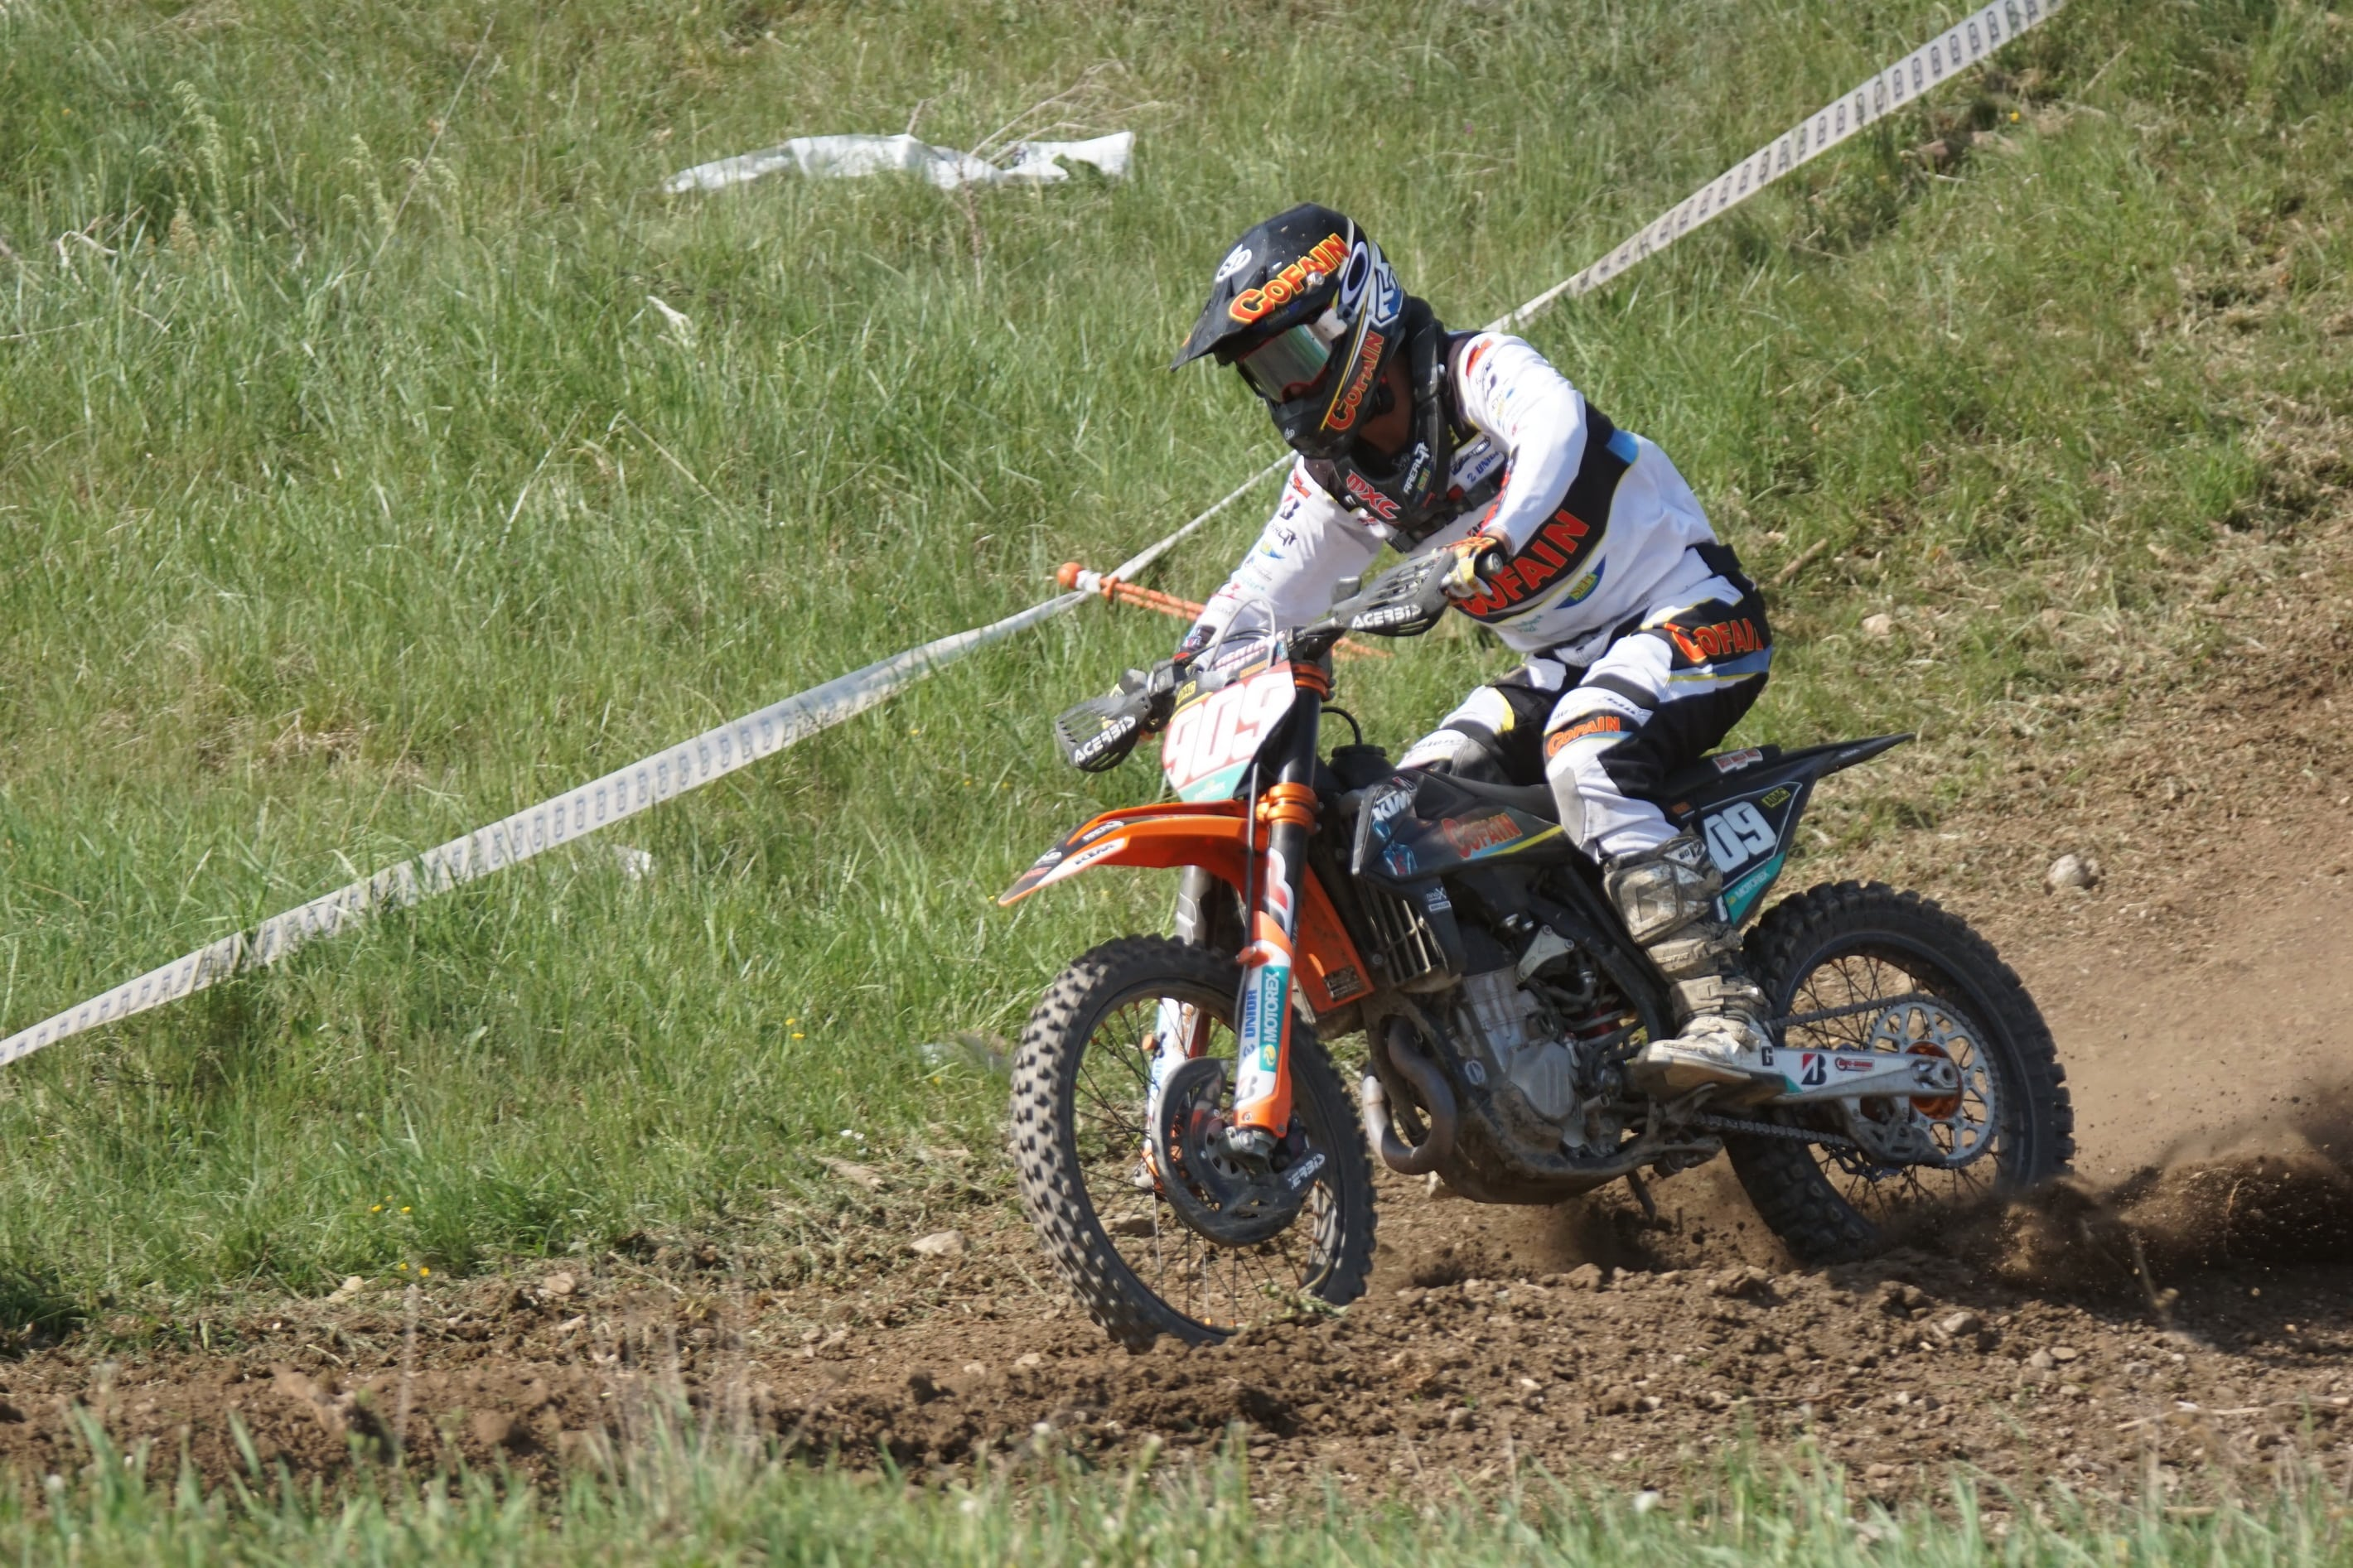 DSC 912_Moto Cross Sittendorf Teil1 am 29.04.2018